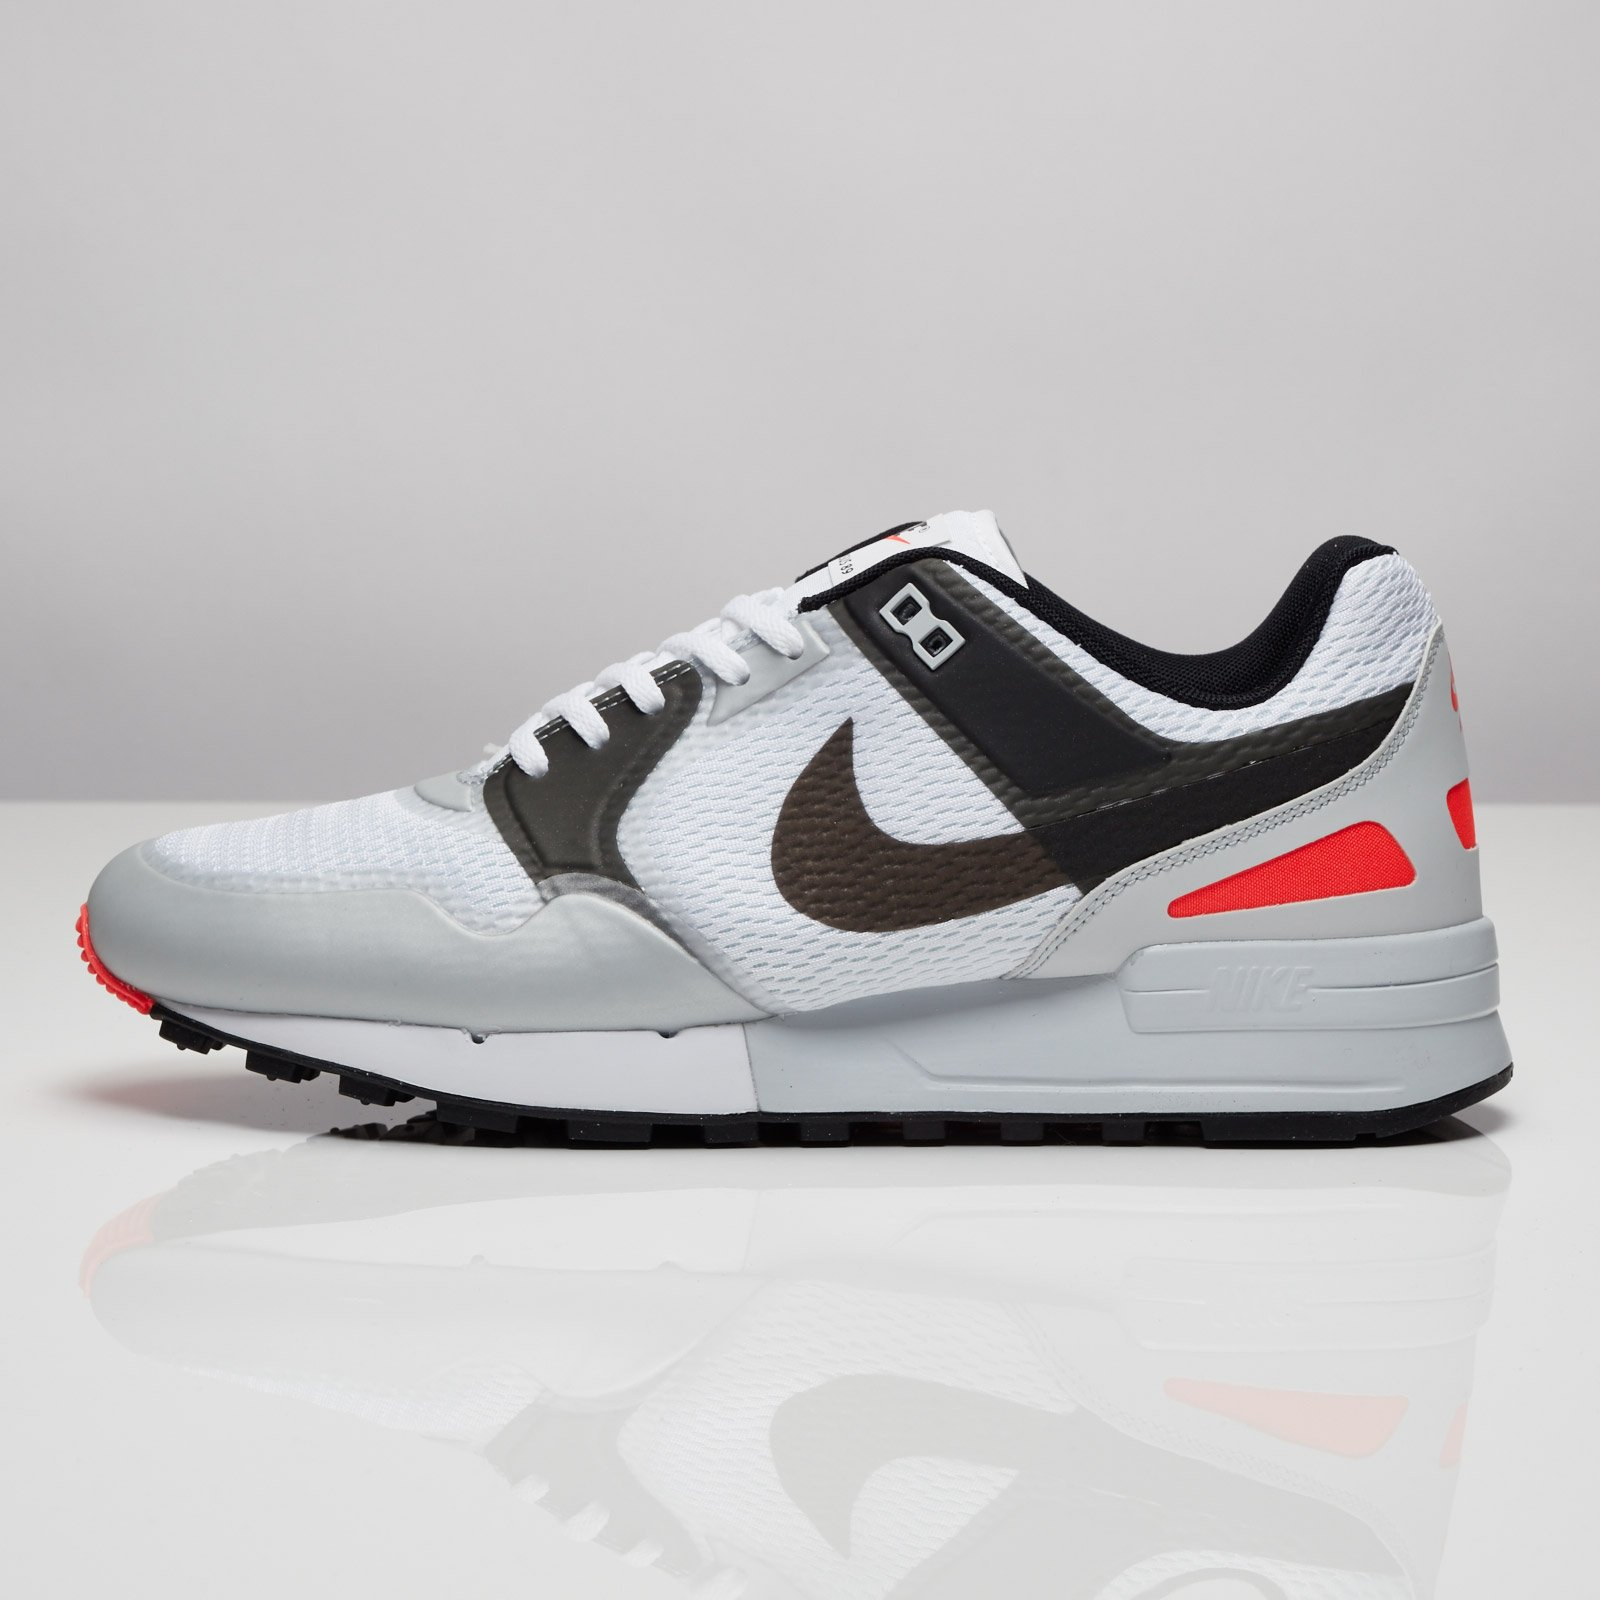 nike air pegasus 89 ns 833148 100 sneakersnstuff. Black Bedroom Furniture Sets. Home Design Ideas